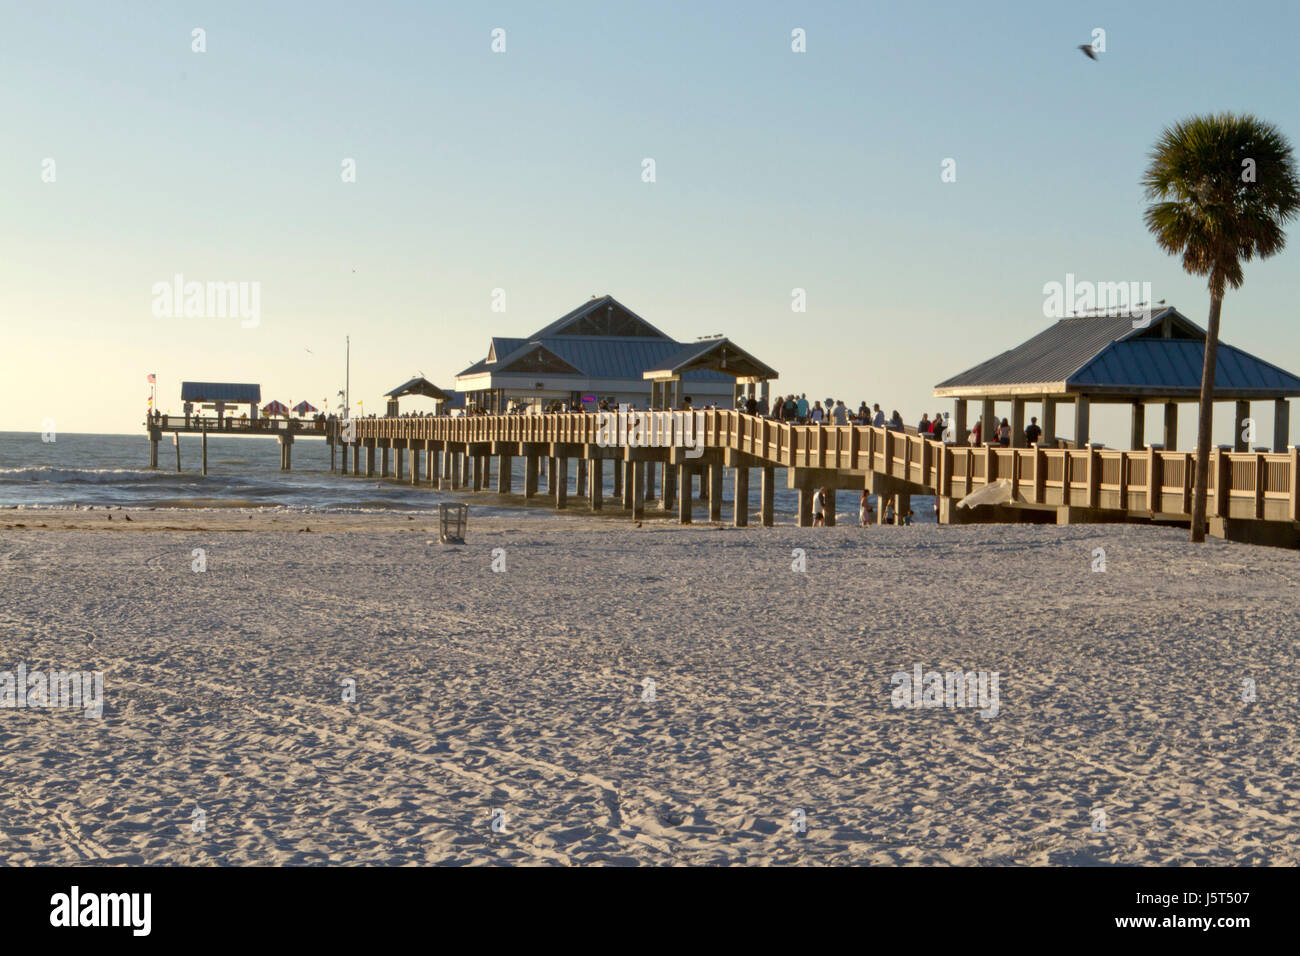 Pier 60 florida stock photos pier 60 florida stock for Clearwater beach fishing